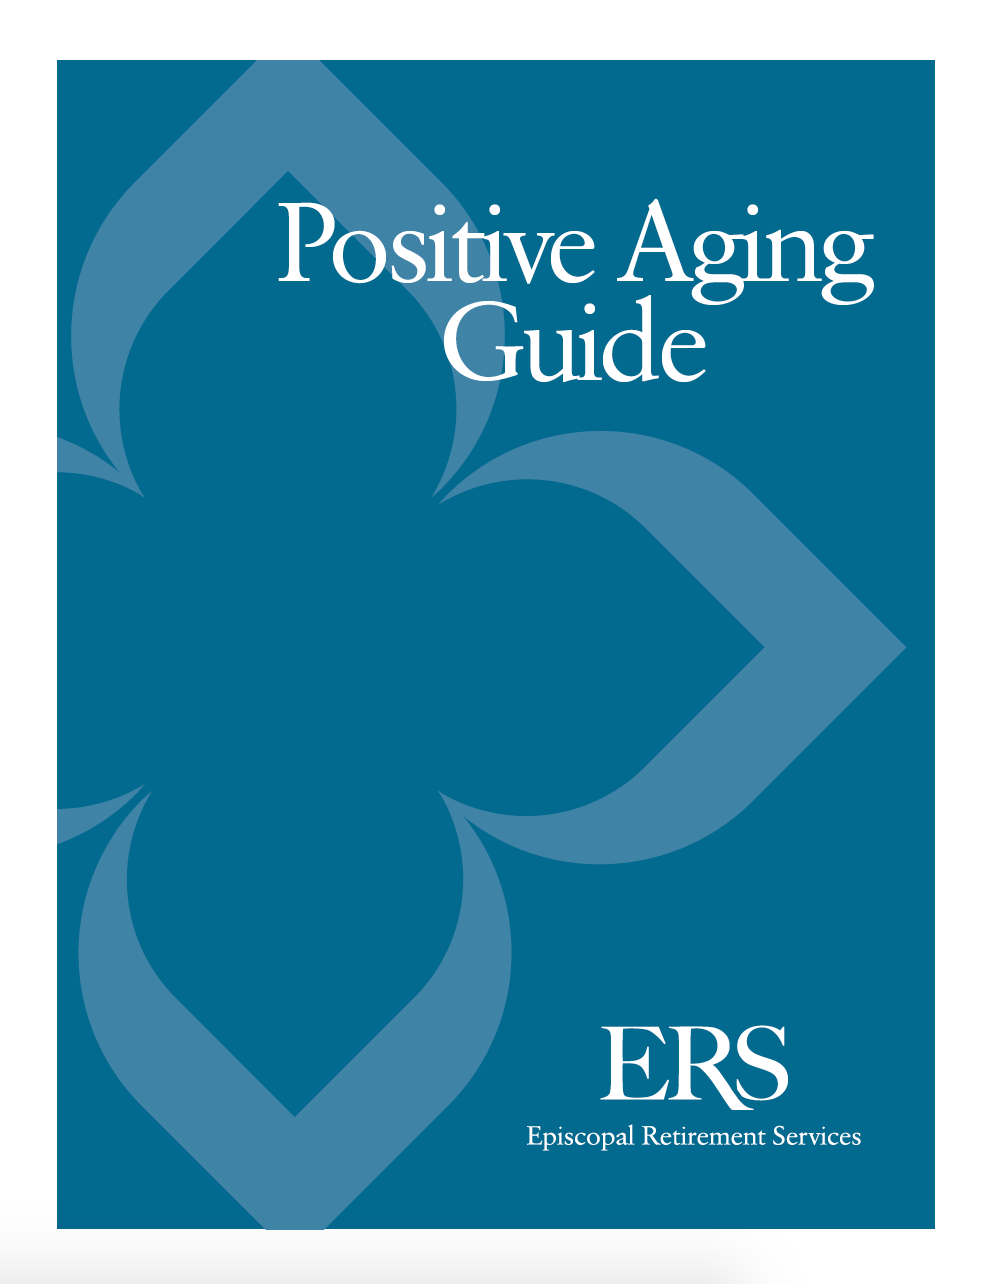 Positive Aging Guide by ERS